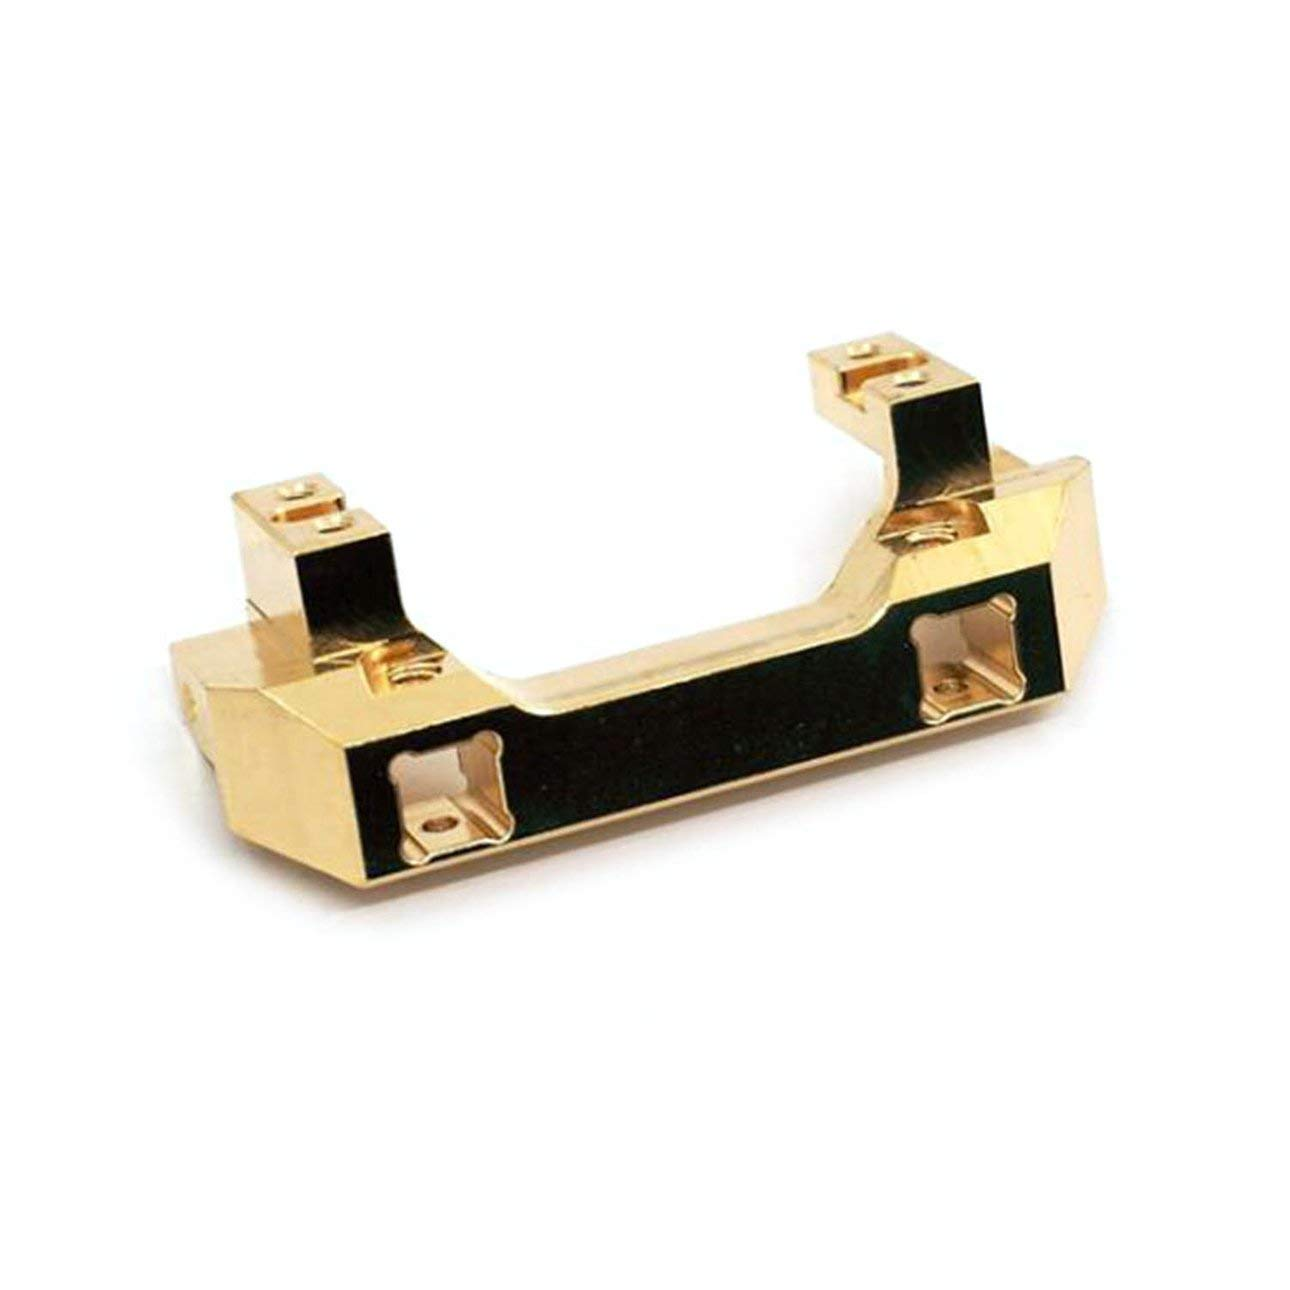 Liobaba Metal Brass Front Bumper Mount with Servo Mount for RC Traxxas TRX-4 Car